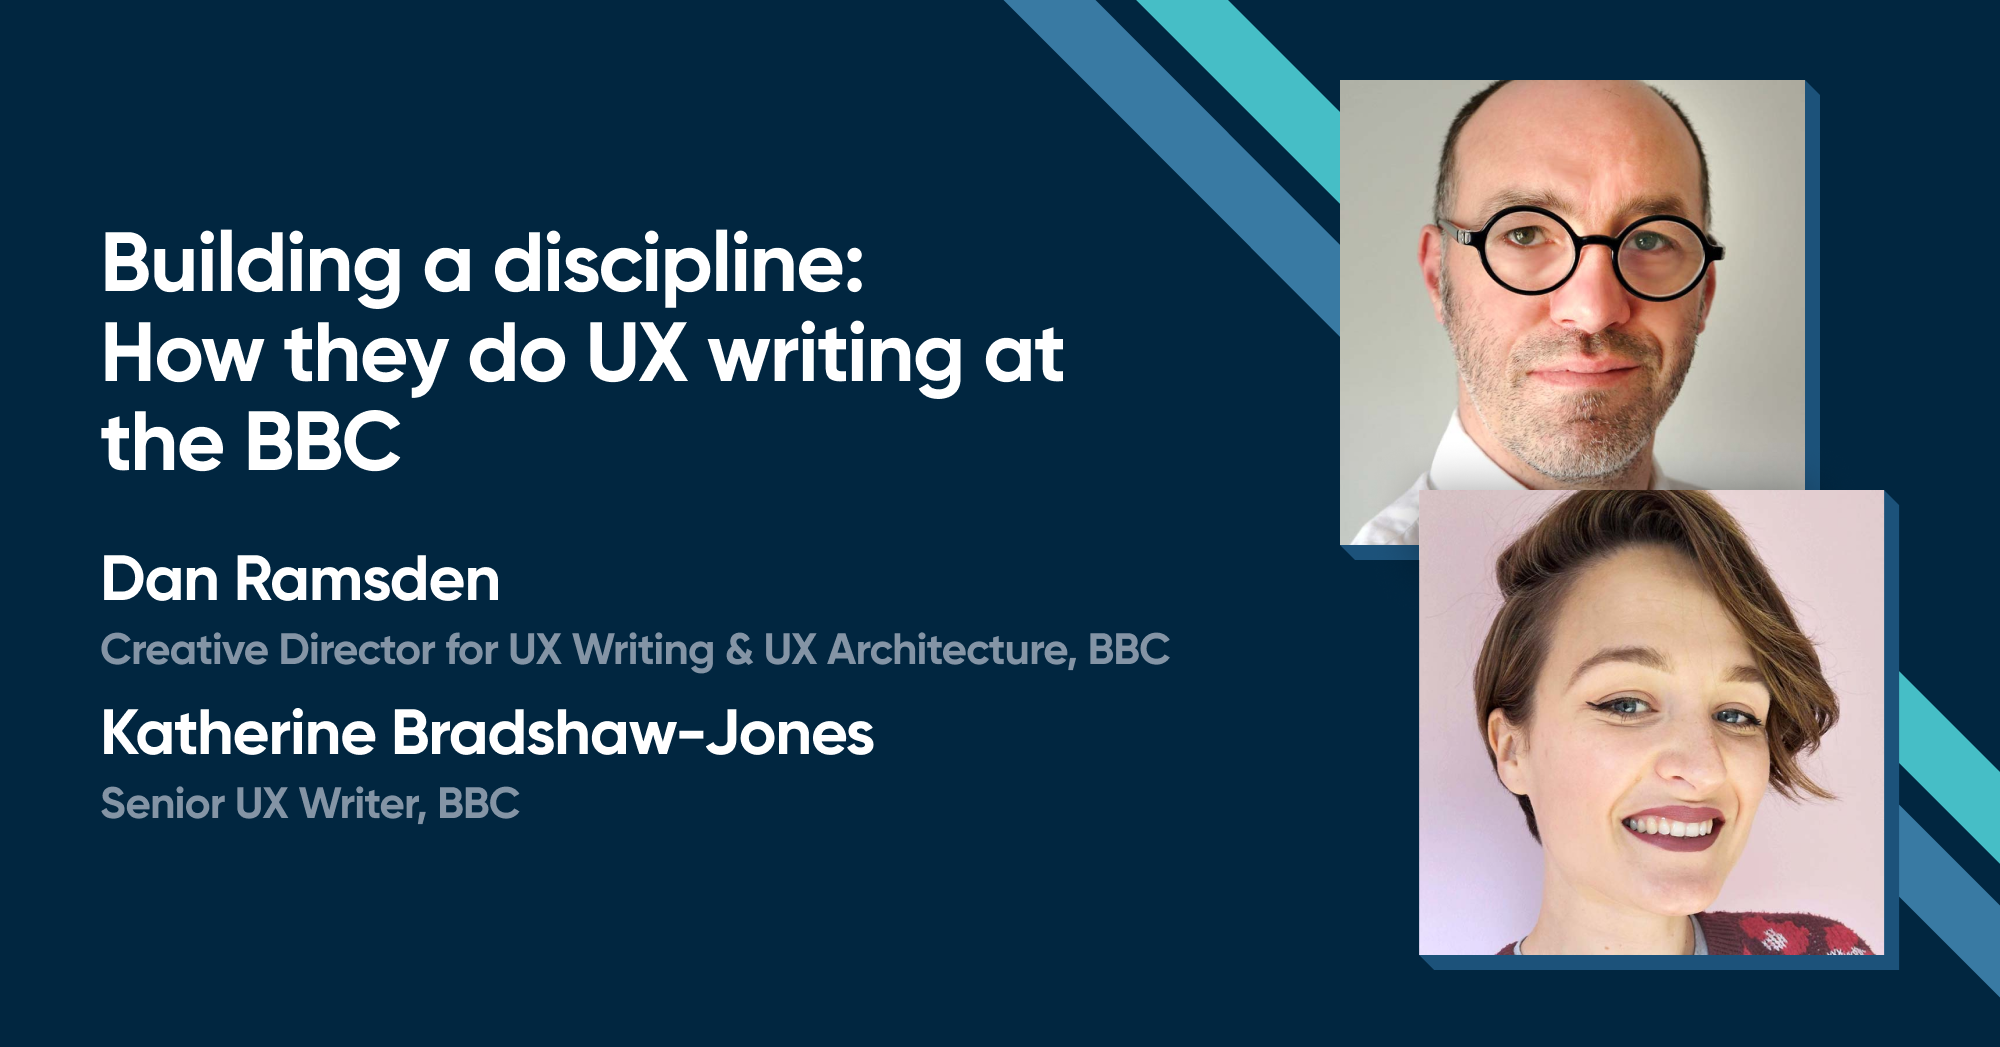 Dan Ramsden & Katherine Bradshaw-Jones - Building a discipline: How they do UX writing at the BBC